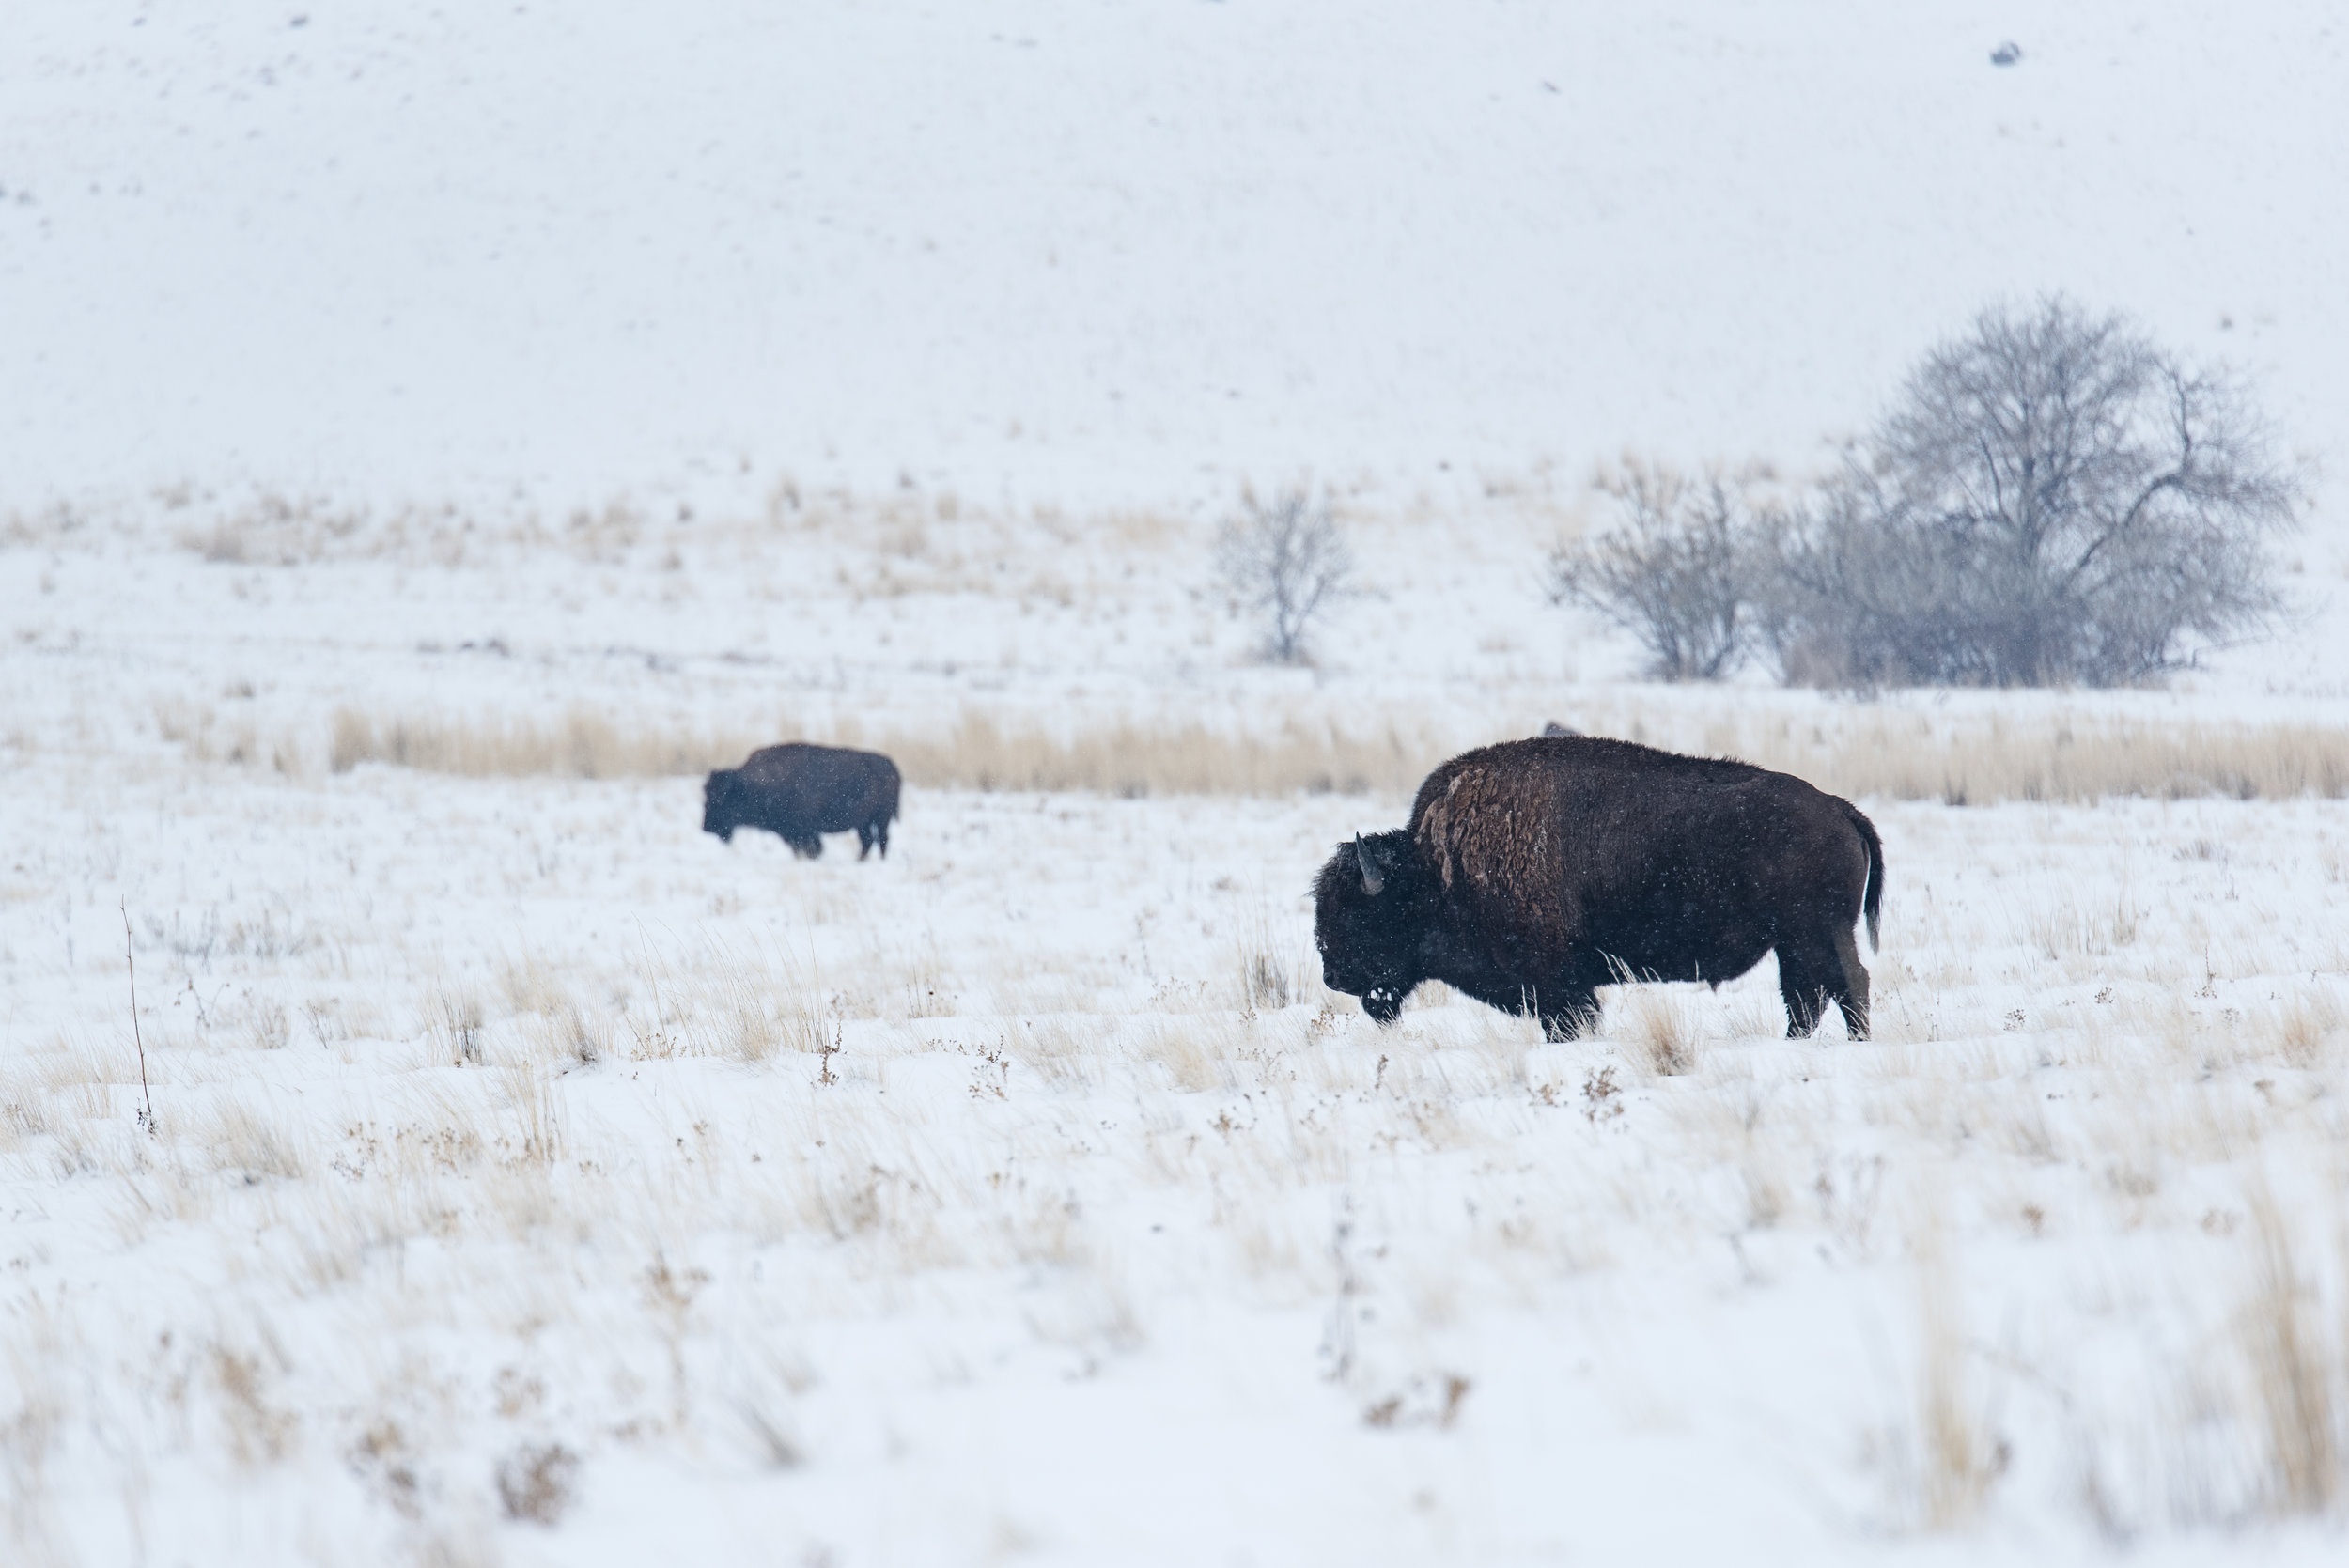 The mighty bison roamin' about. Shutter Speed: 1/2500 Aperture: f/3.2 ISO: 100